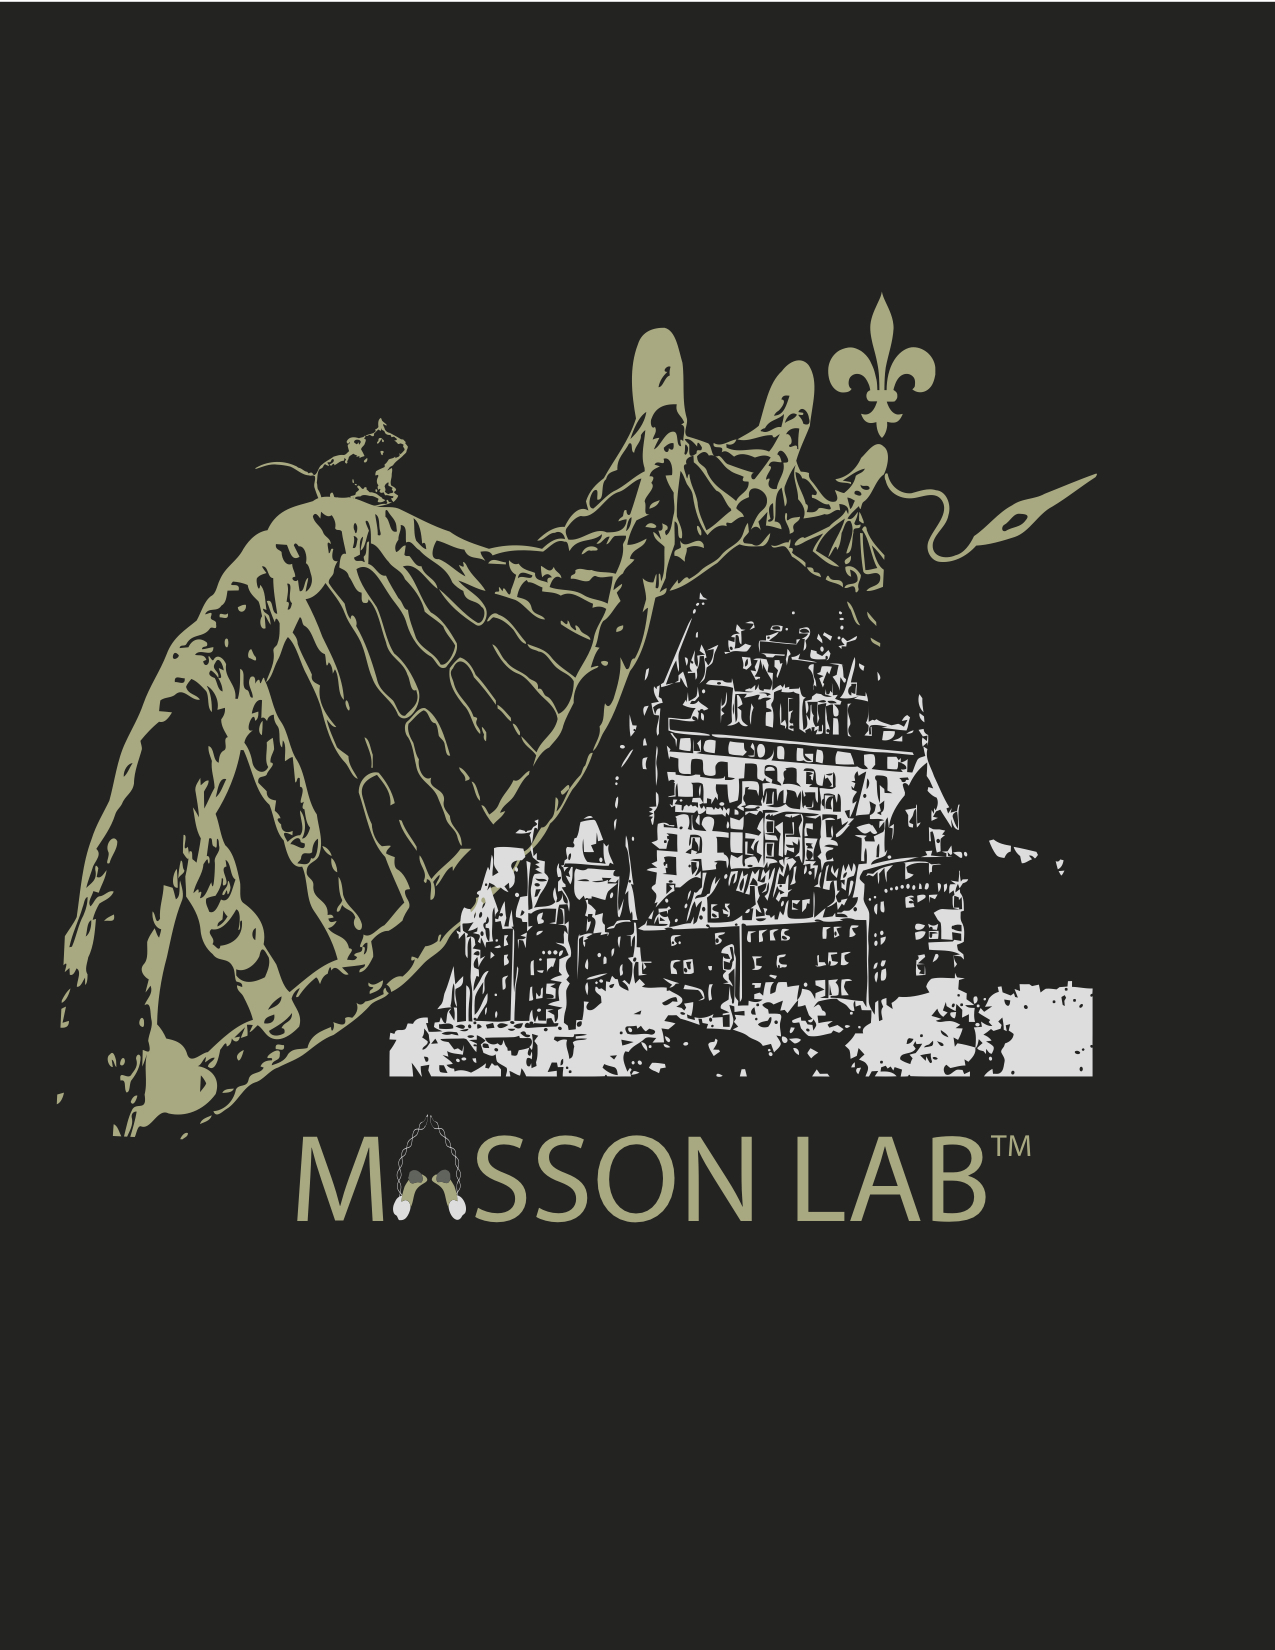 Masson lab Tee version 1